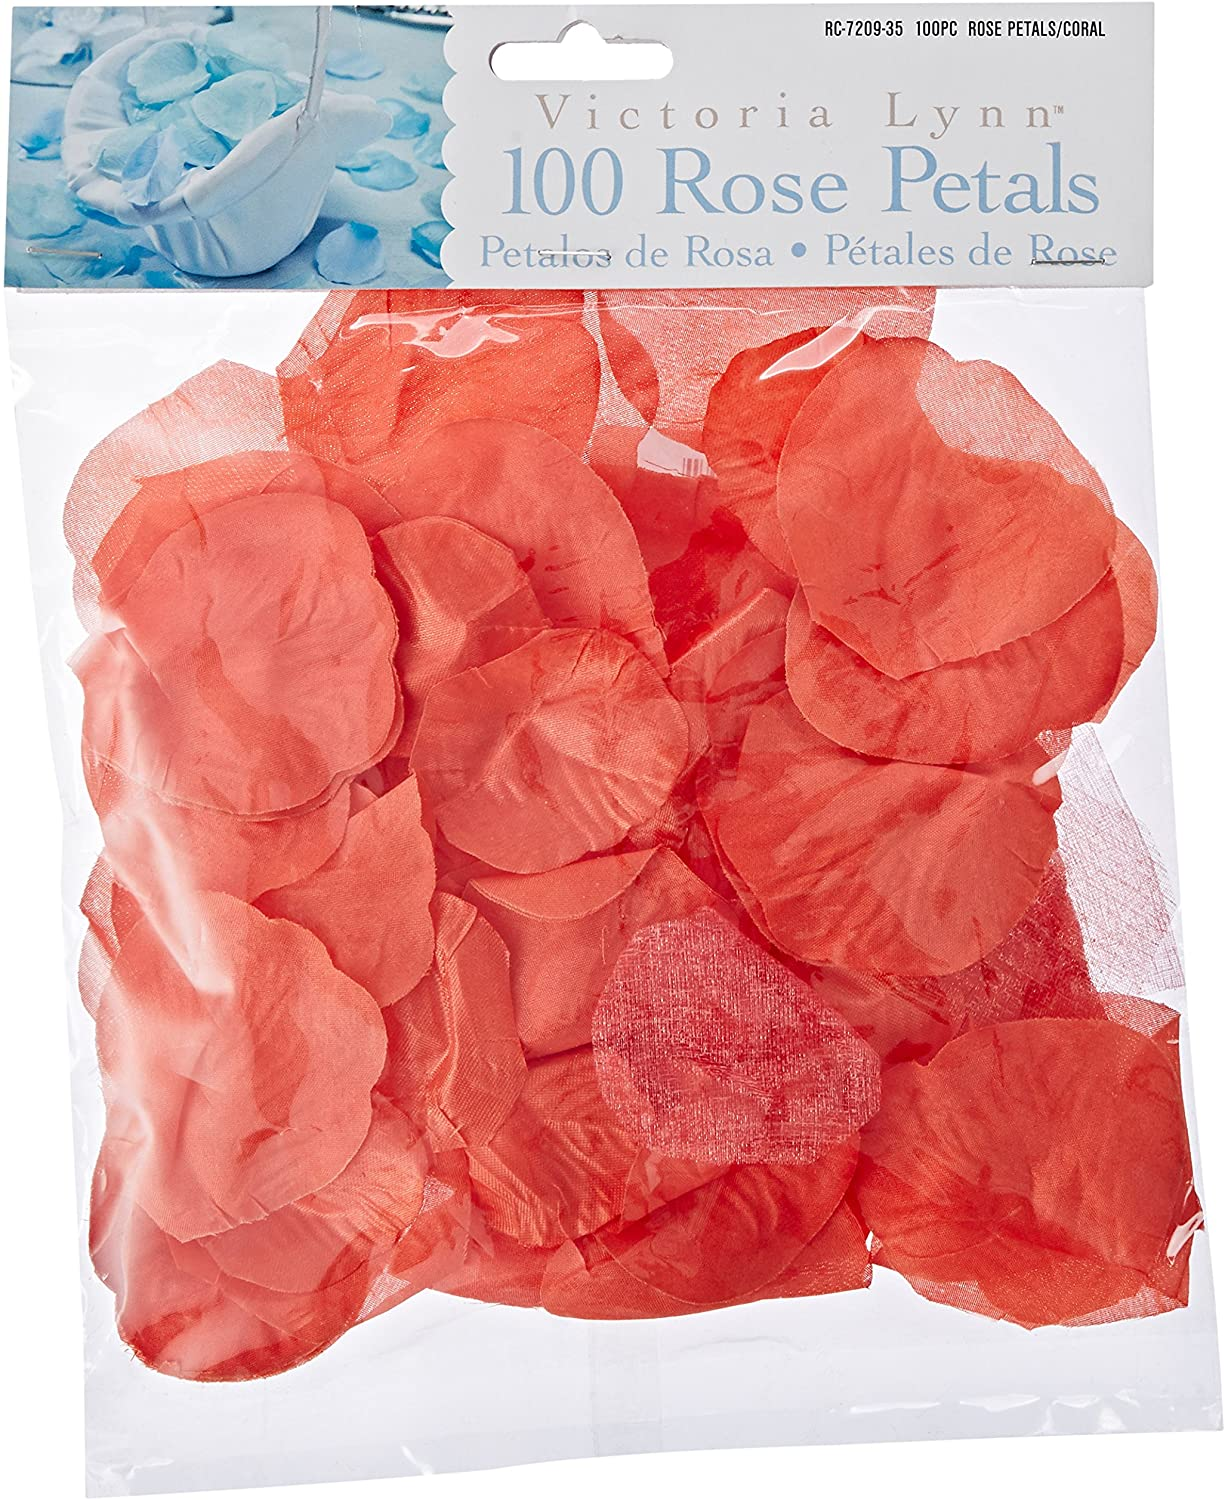 Darice RC-7209-35 Decorative Satin Rose Petals, Coral, 100 Rose Petals